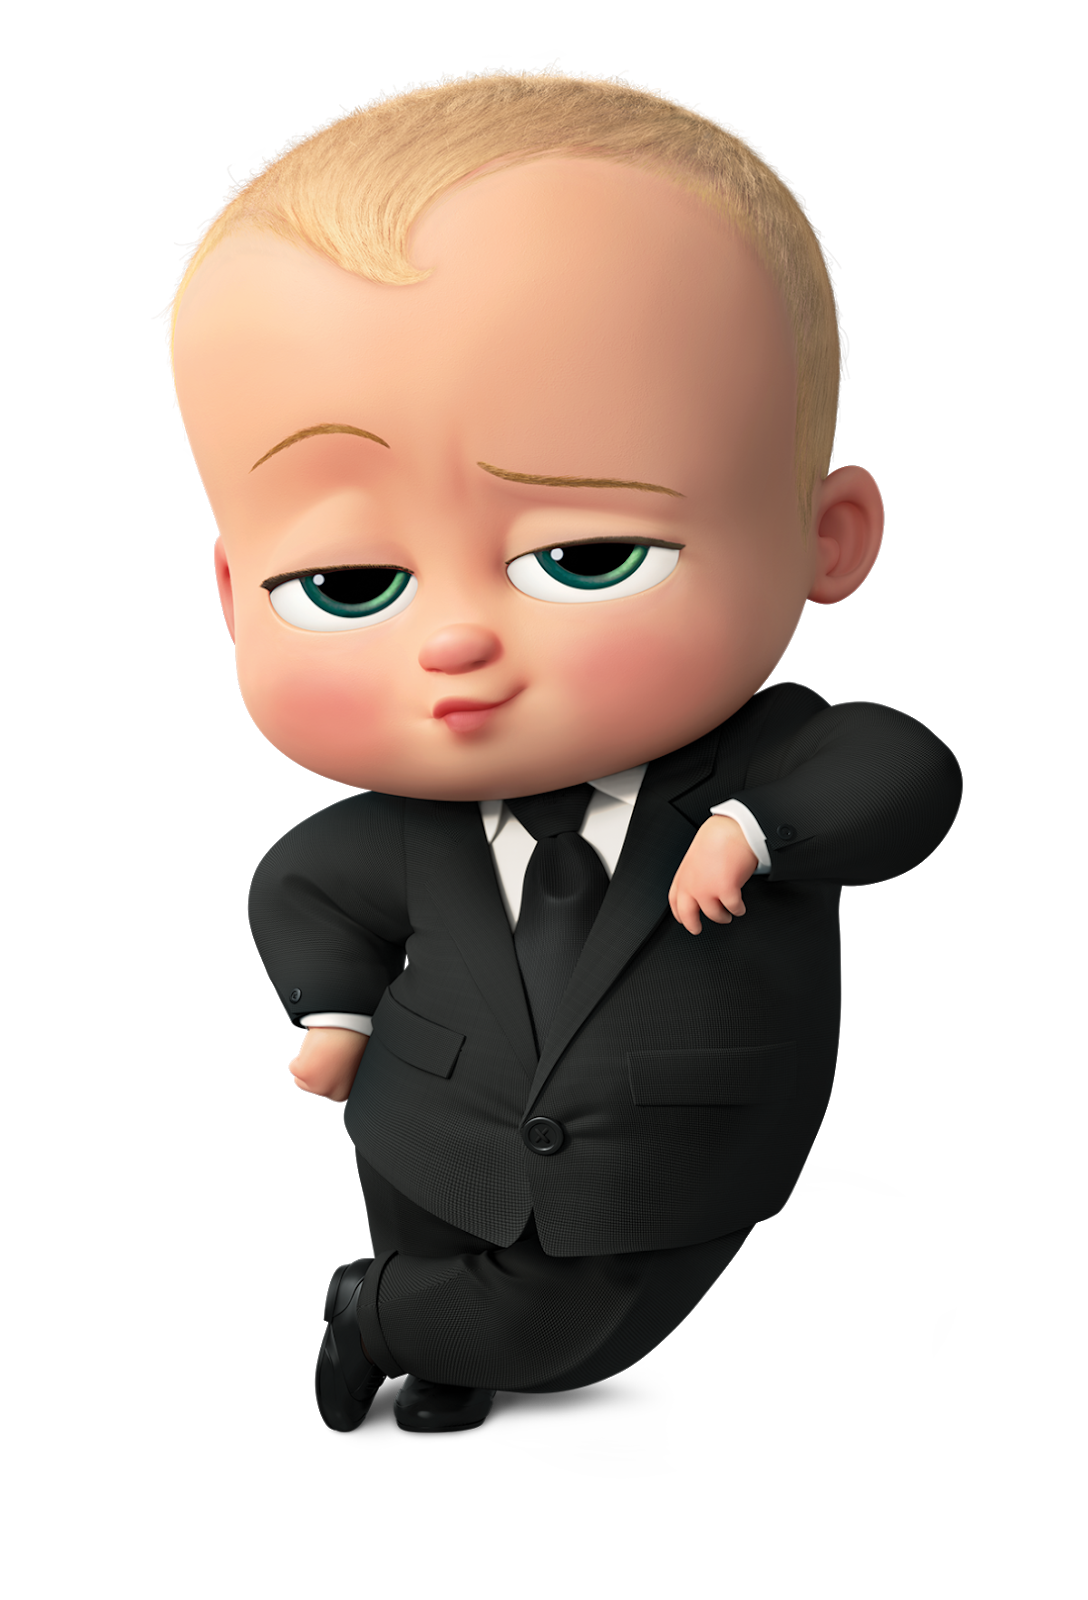 The boss baby png. Cartoon characters s pngs